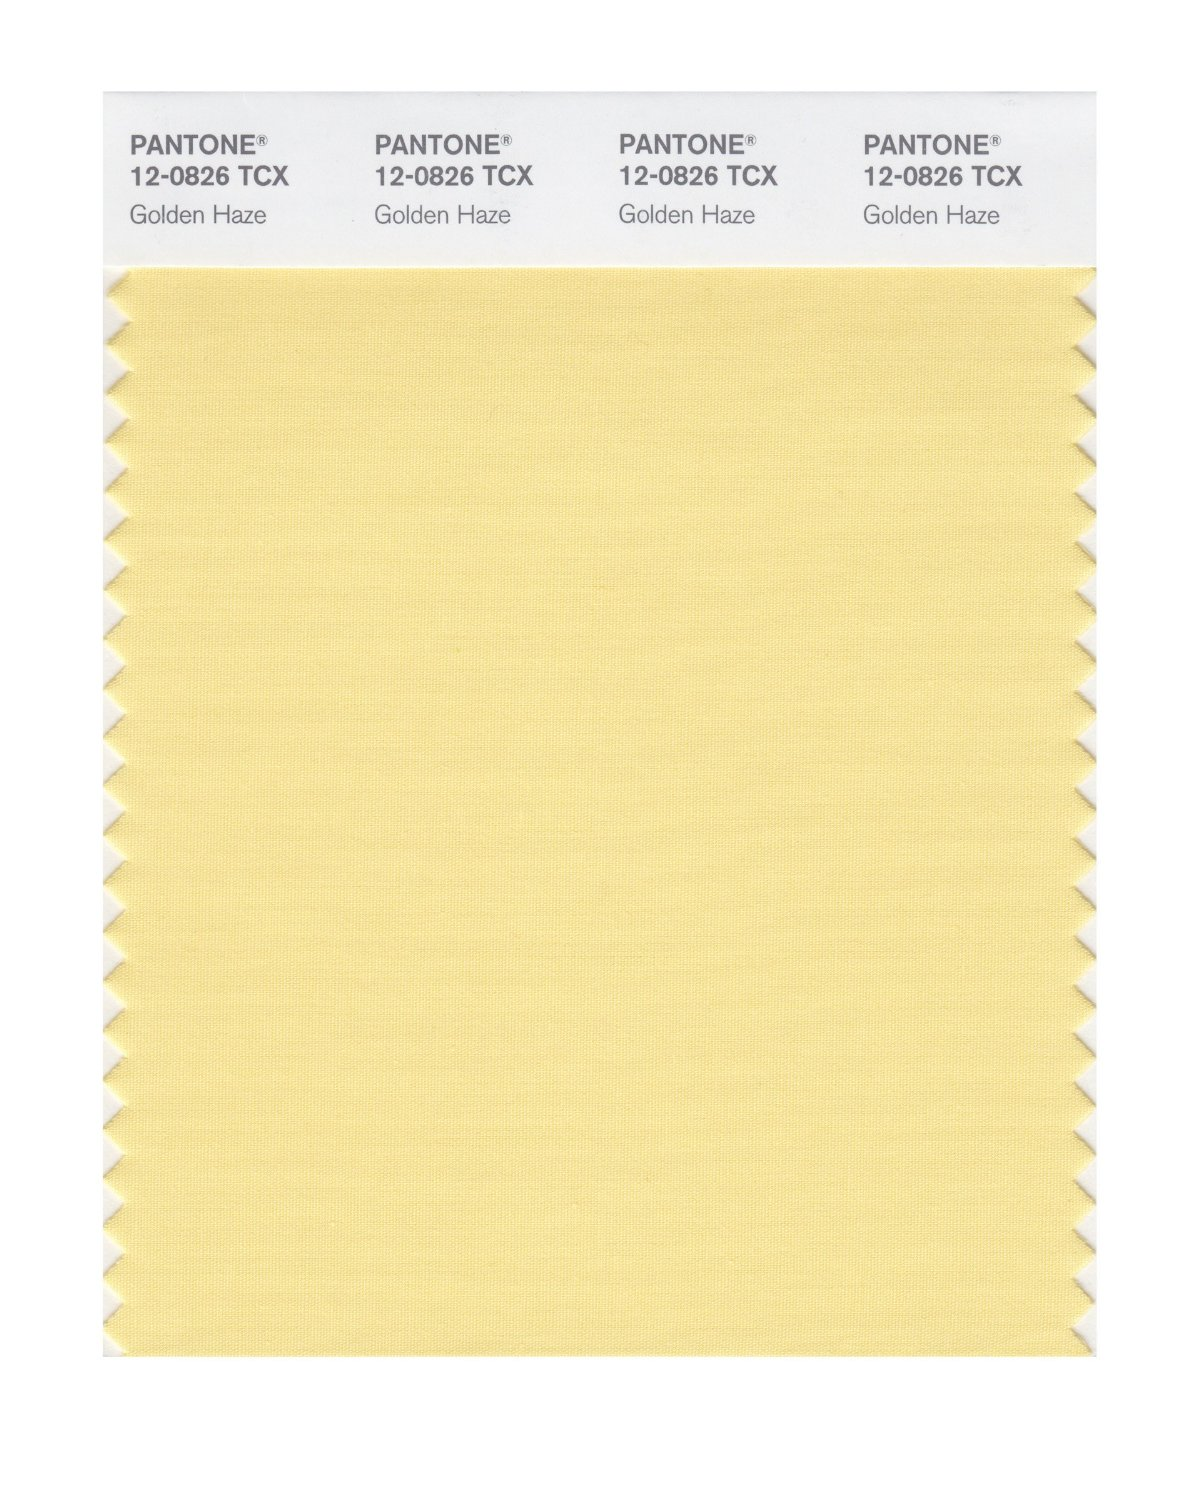 Pantone Smart Swatch 12-0826 Golden Haze